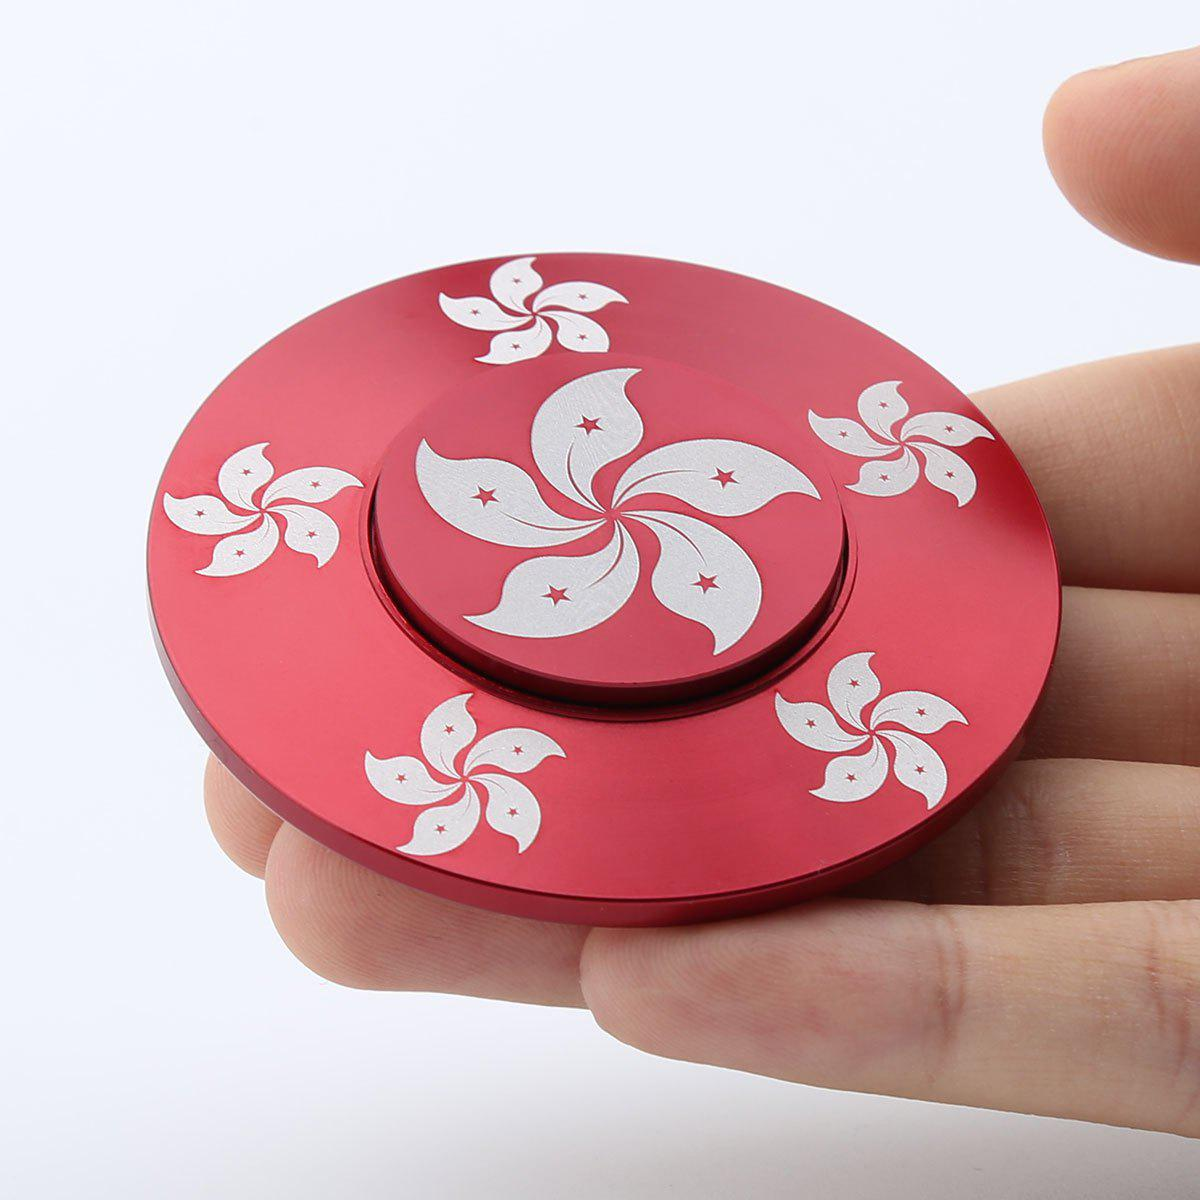 Bauhinia Relaxation Gift Fidget Toy Hand Spinner - RED 6*6*1.2CM